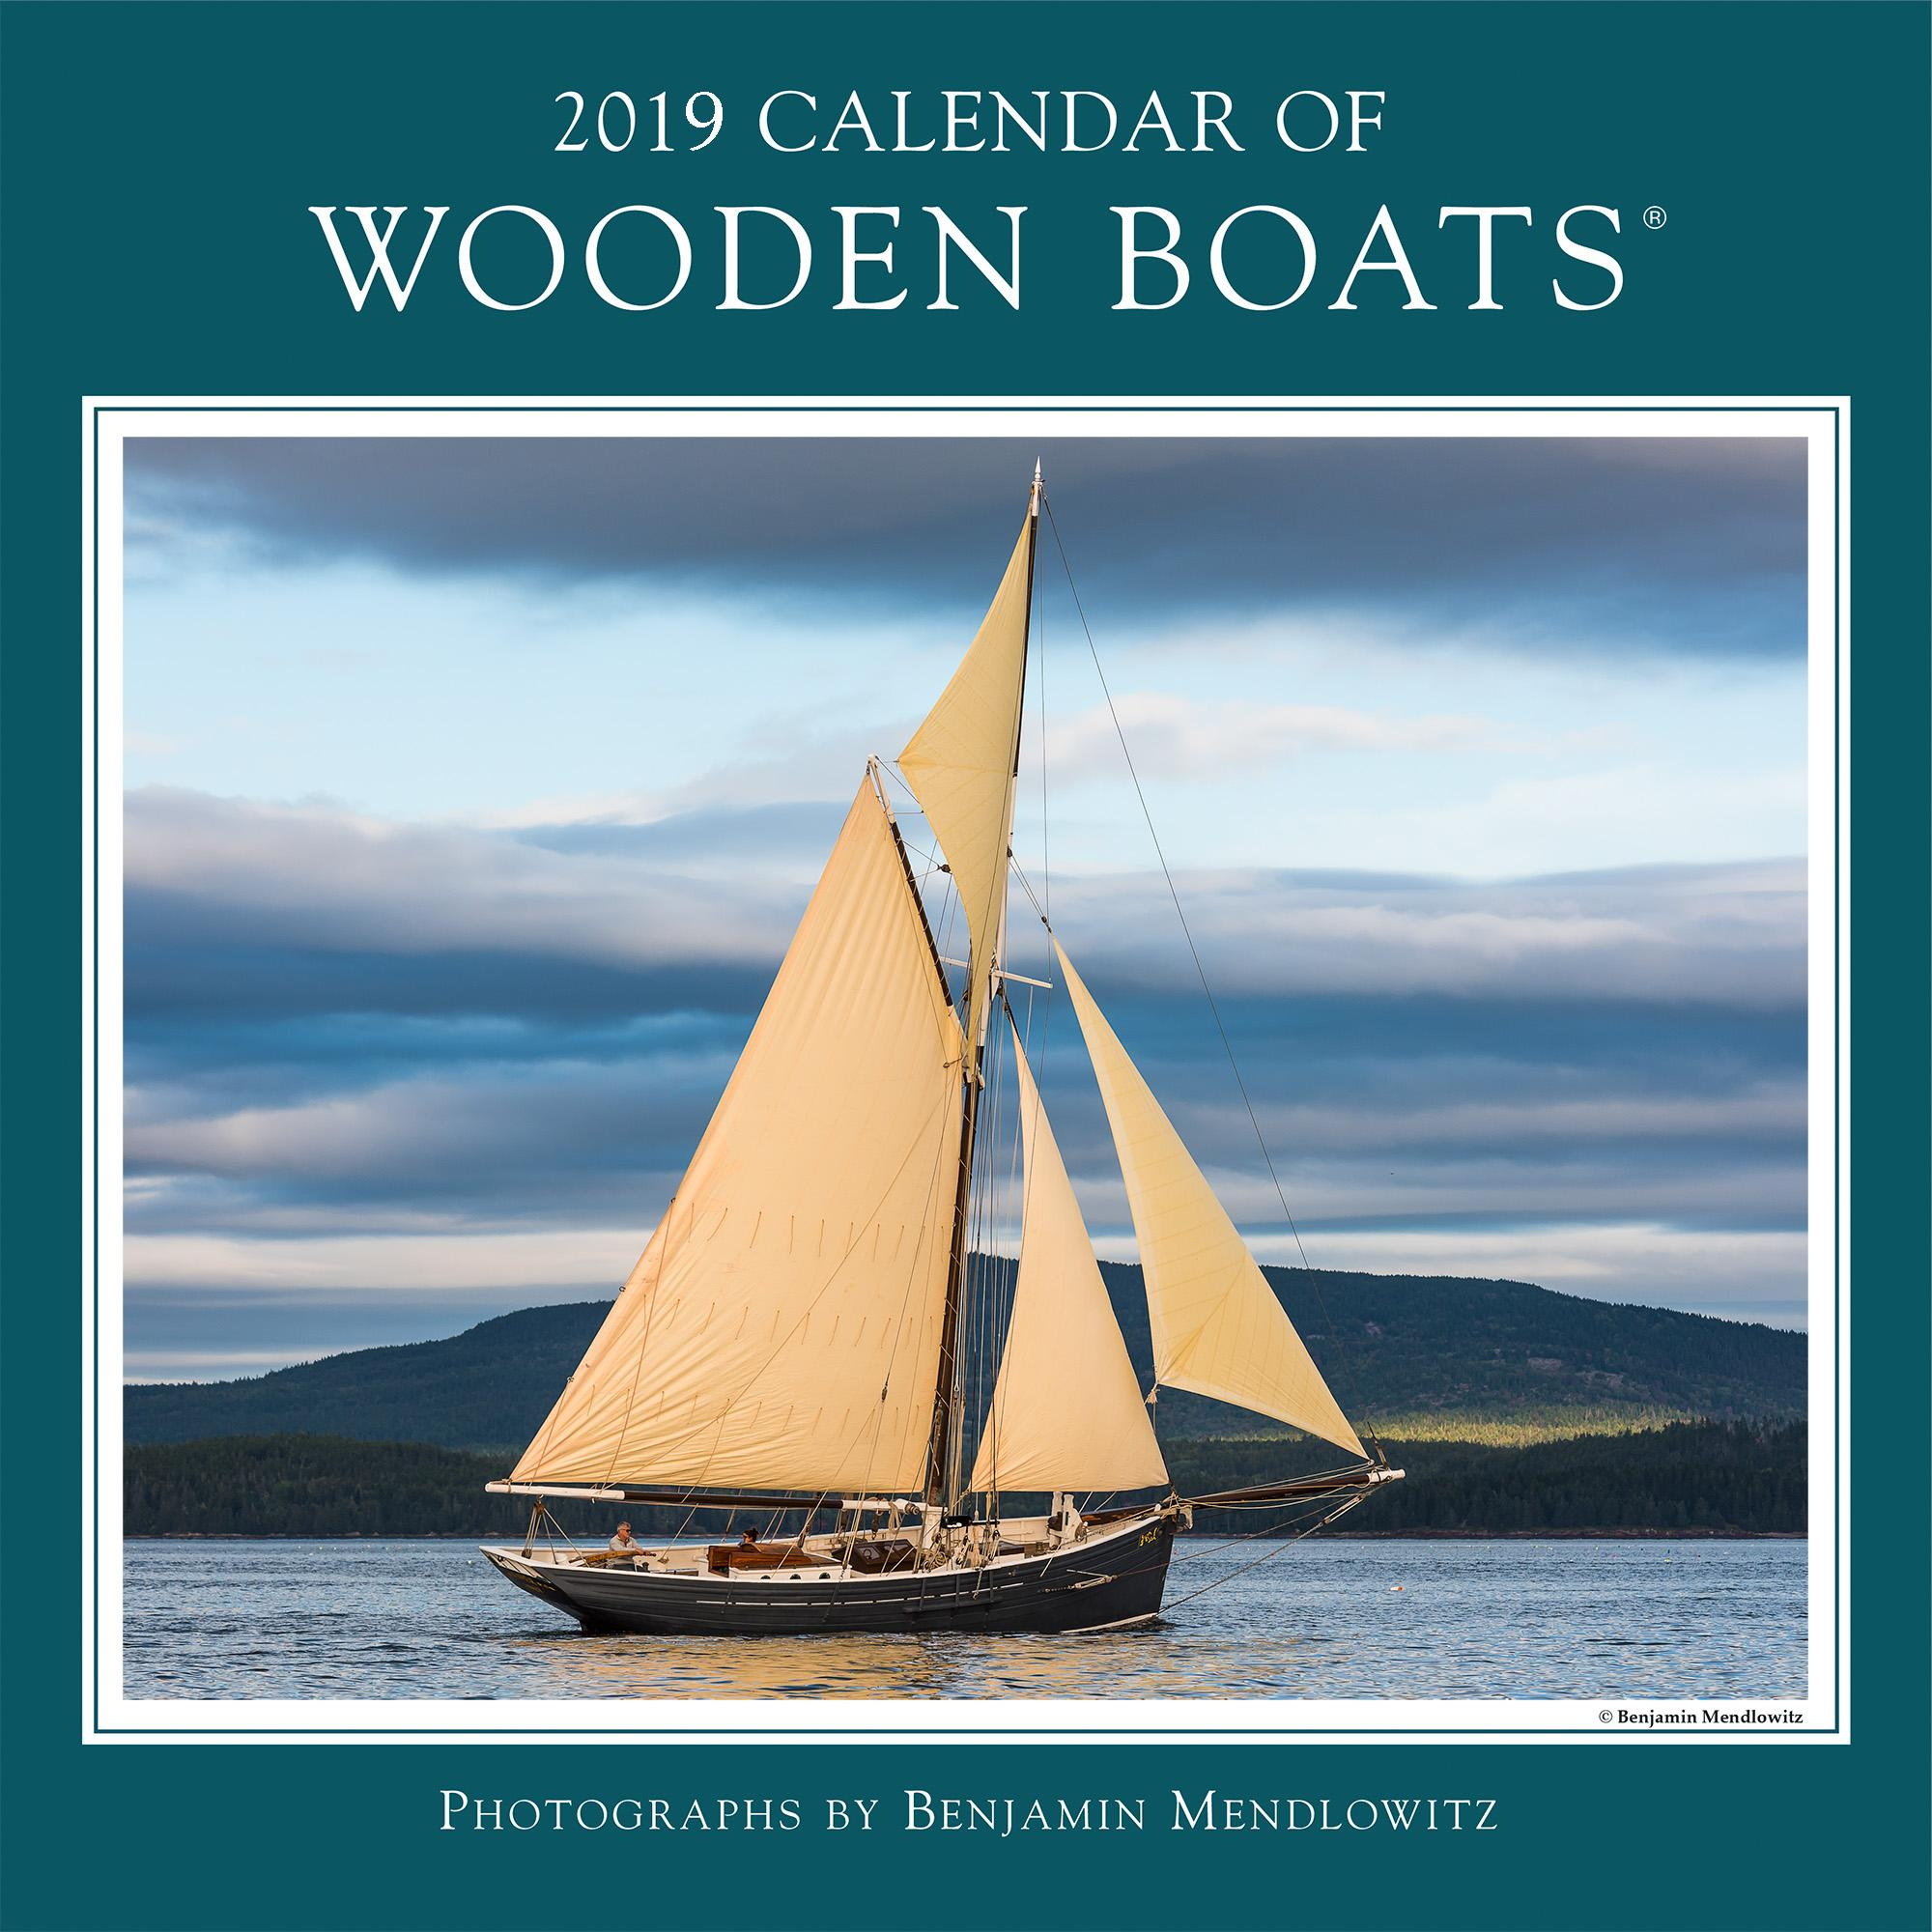 2019 Calendar of Wooden Boats (Other)